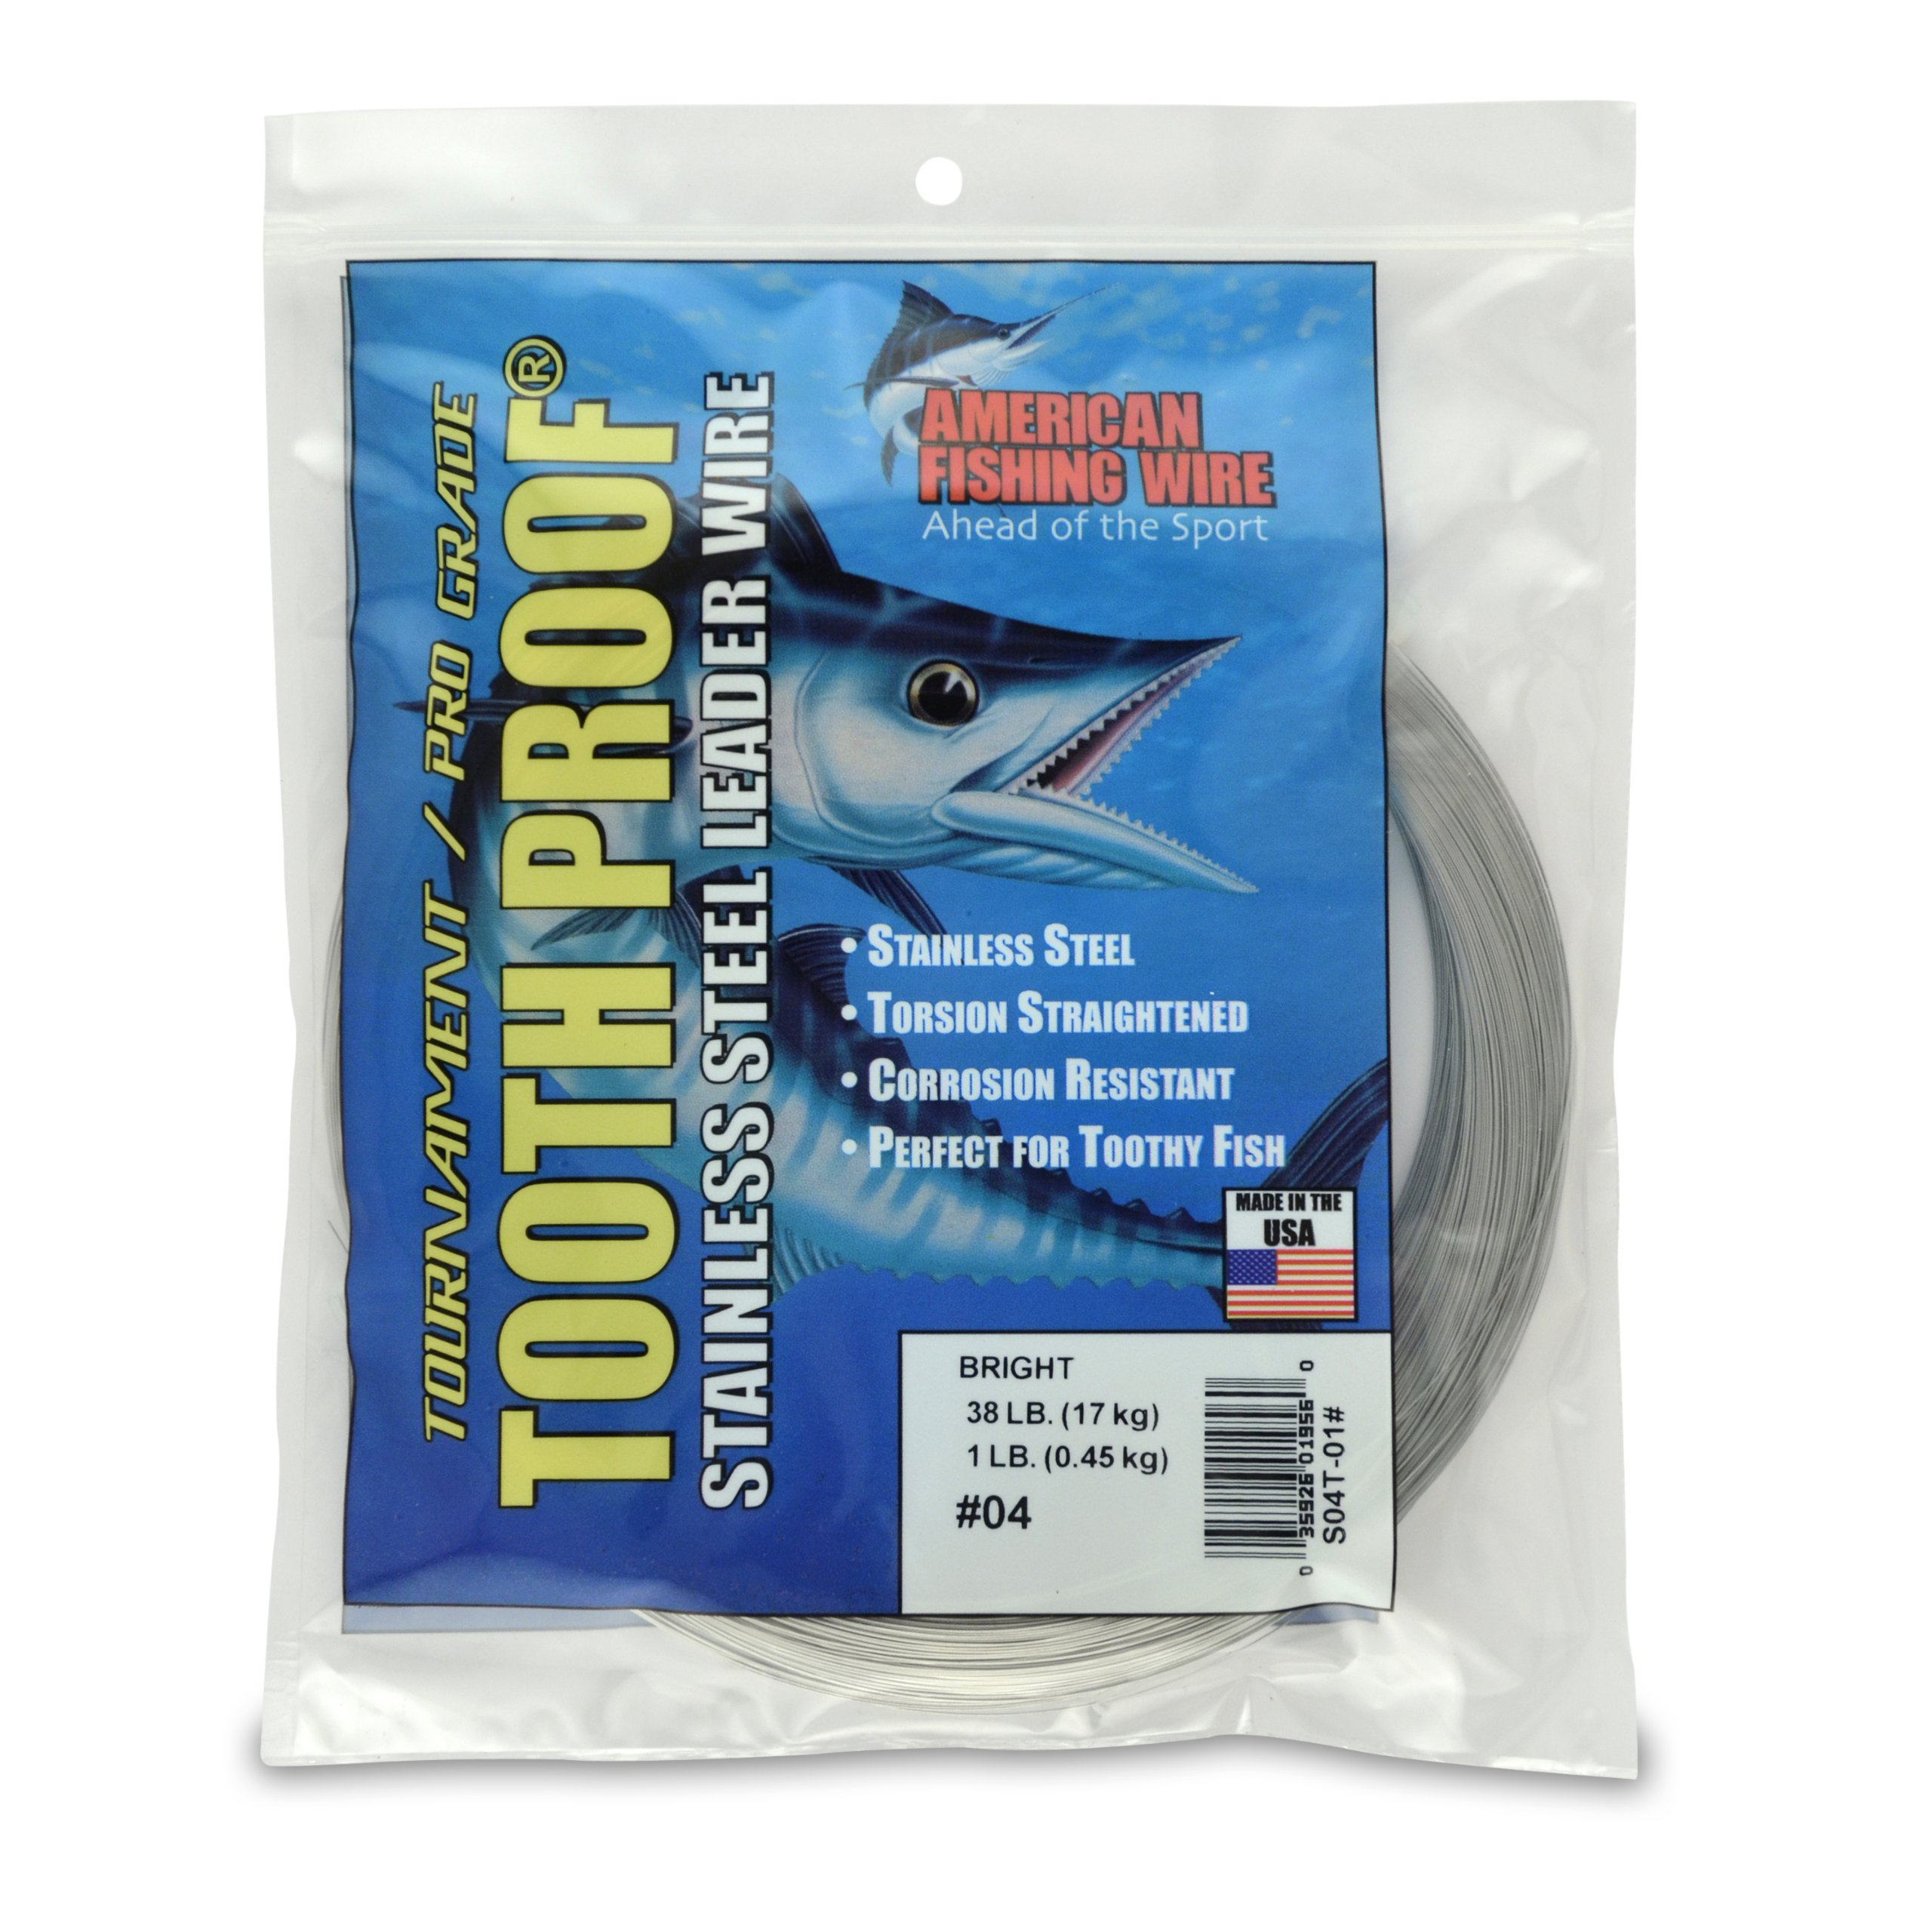 American Fishing Wire Tooth Proof Stainless Steel Single Strand Leader Wire, Size 4, Bright Color, 38 Pound Test, 1 Pound Coil